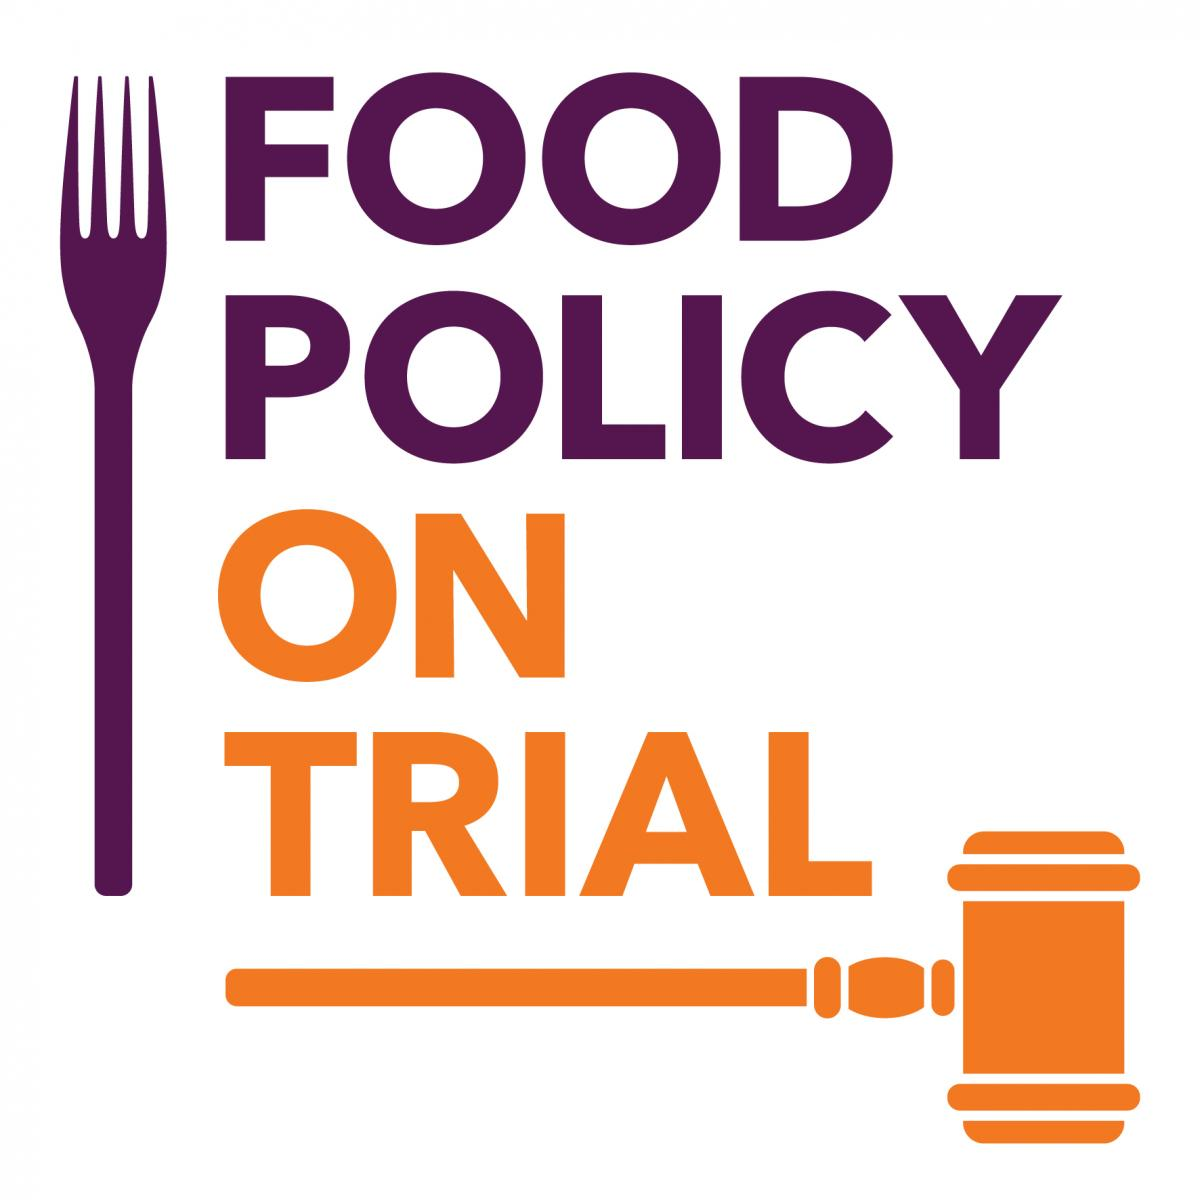 Food Policy on Trial logo. Photo credit: Food Ethics Council